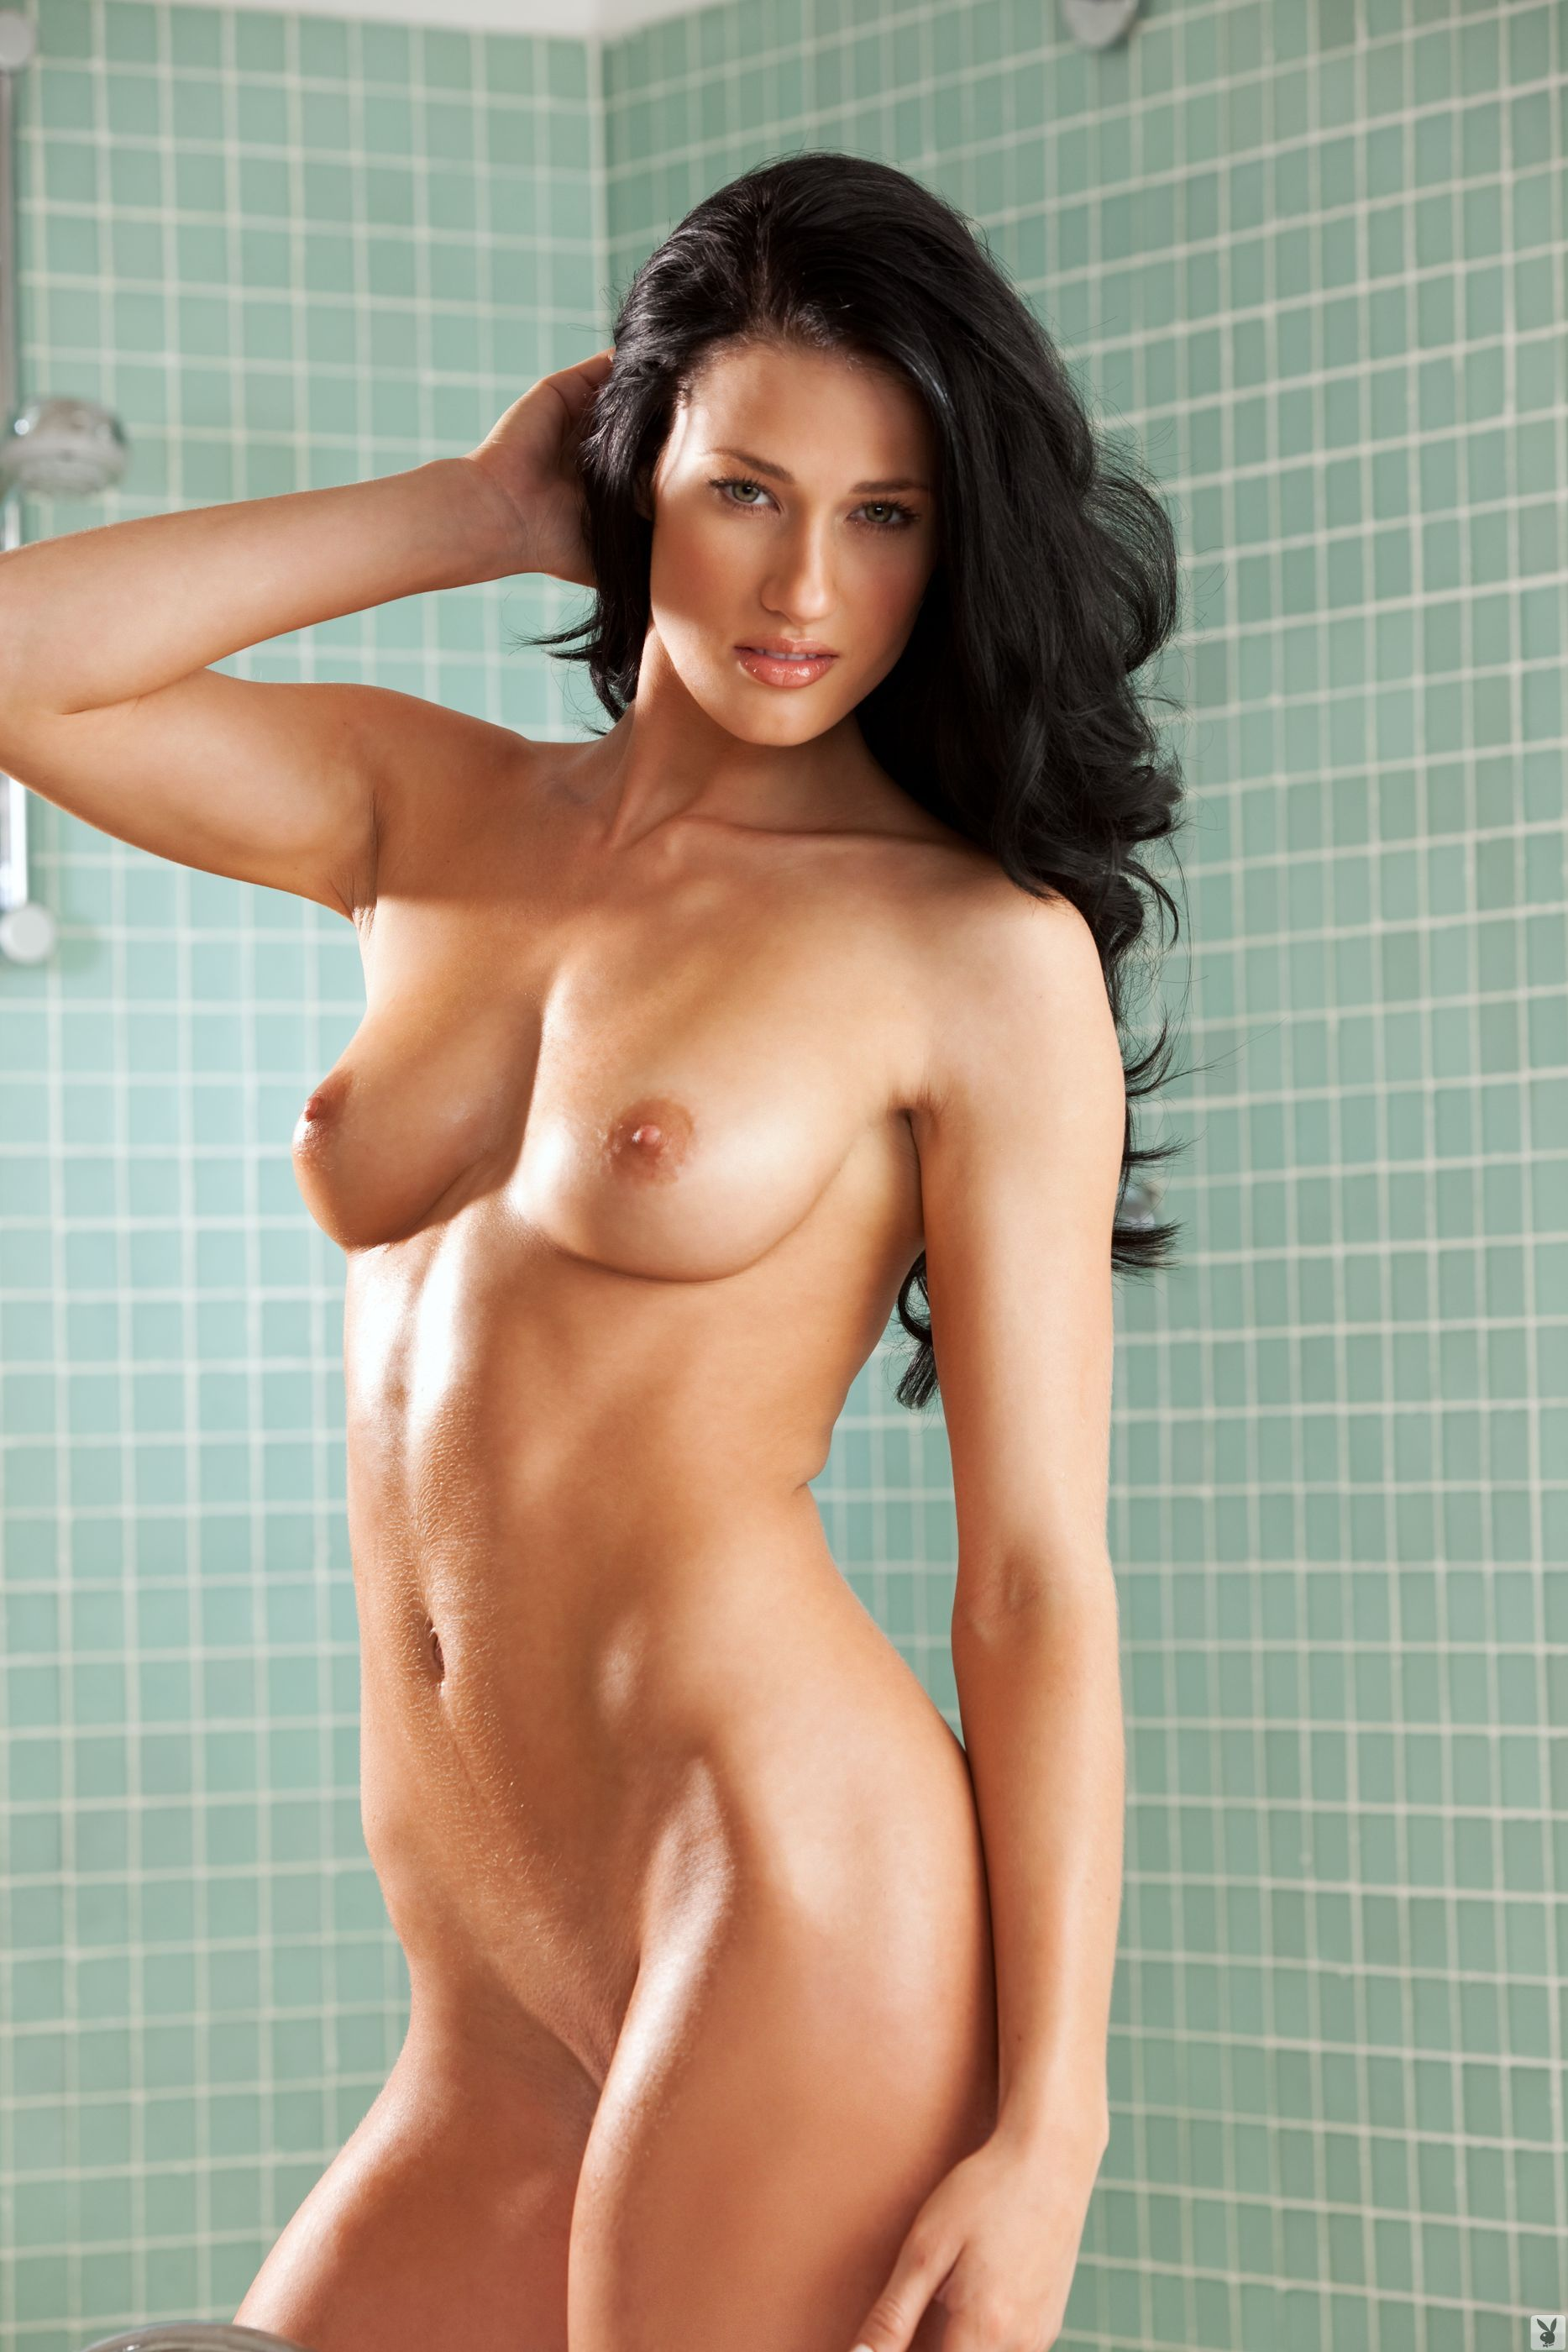 ashton-winters-brunette-nude-bathroom-playboy-05